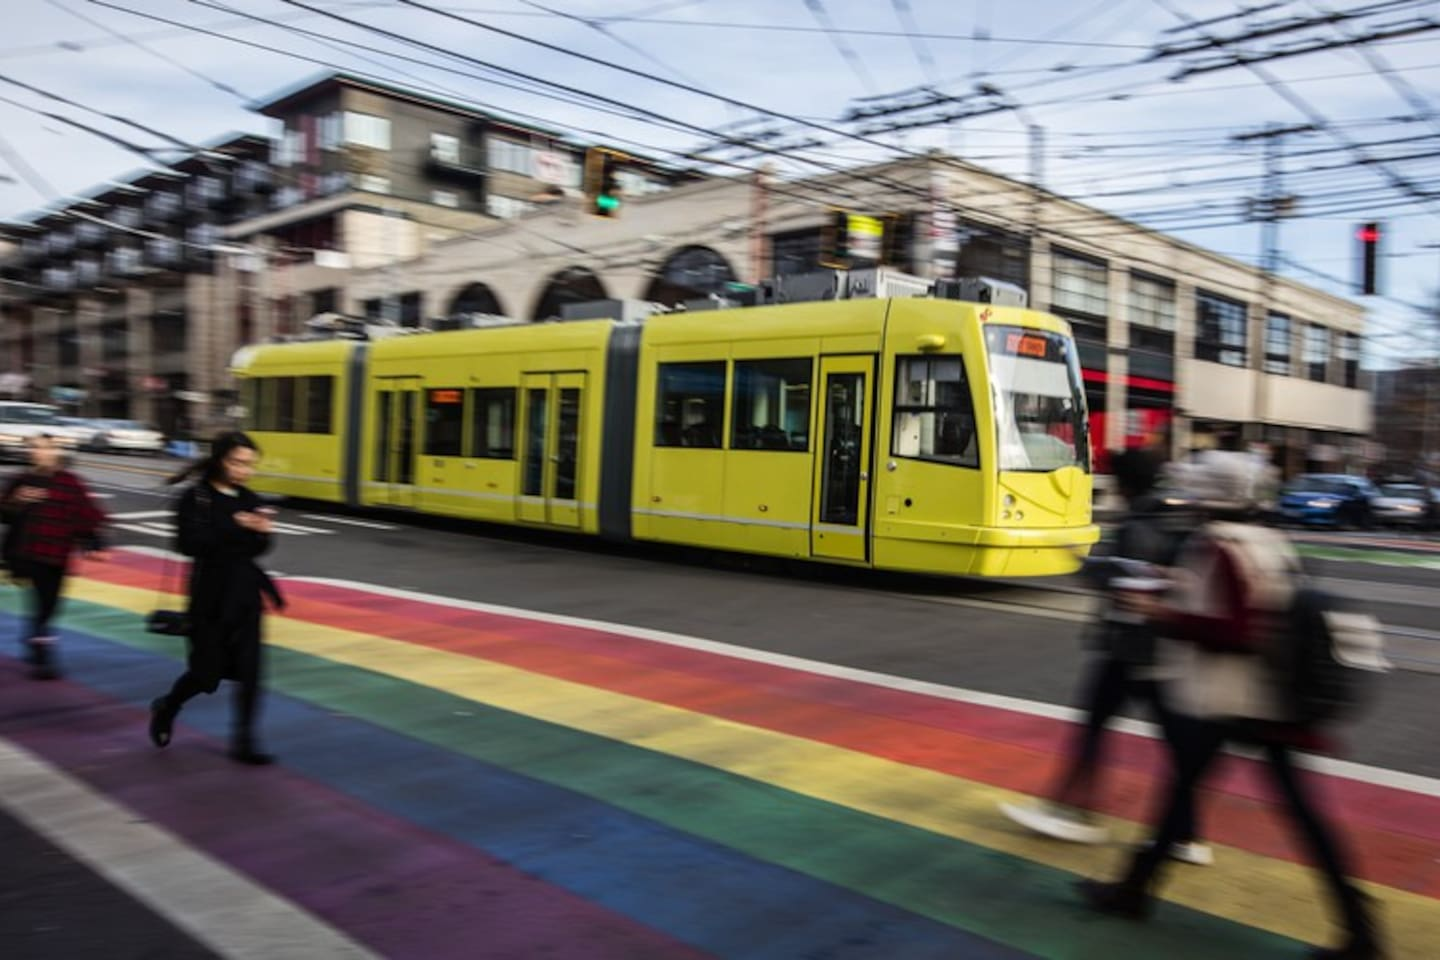 Take the Streetcar to bars and restaurants. 1 block away.